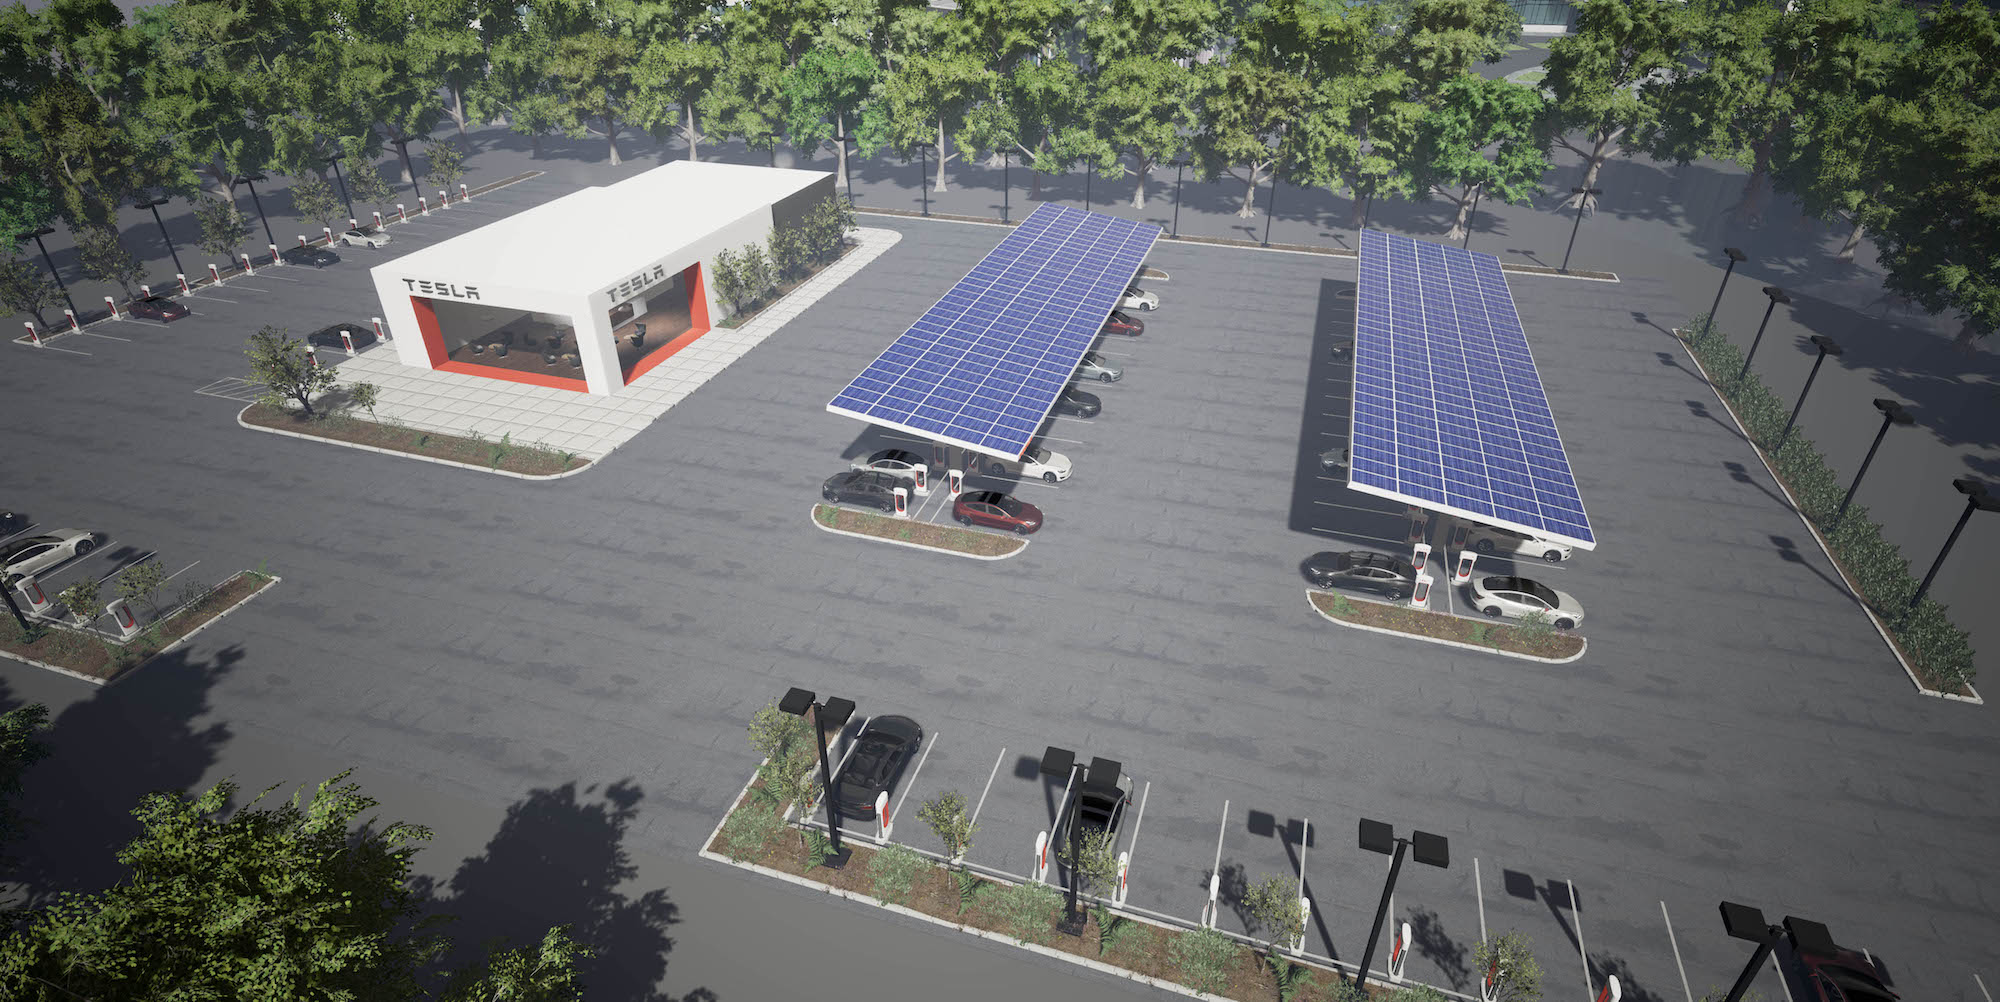 Tesla Supercharger Locations List additionally Model S Has You Covered moreover Tesla Charging Station Locations Kentucky likewise Tesla Accepting Orders In Portugal additionally Free Ev Charging Station Locations. on tesla supercharger locations california